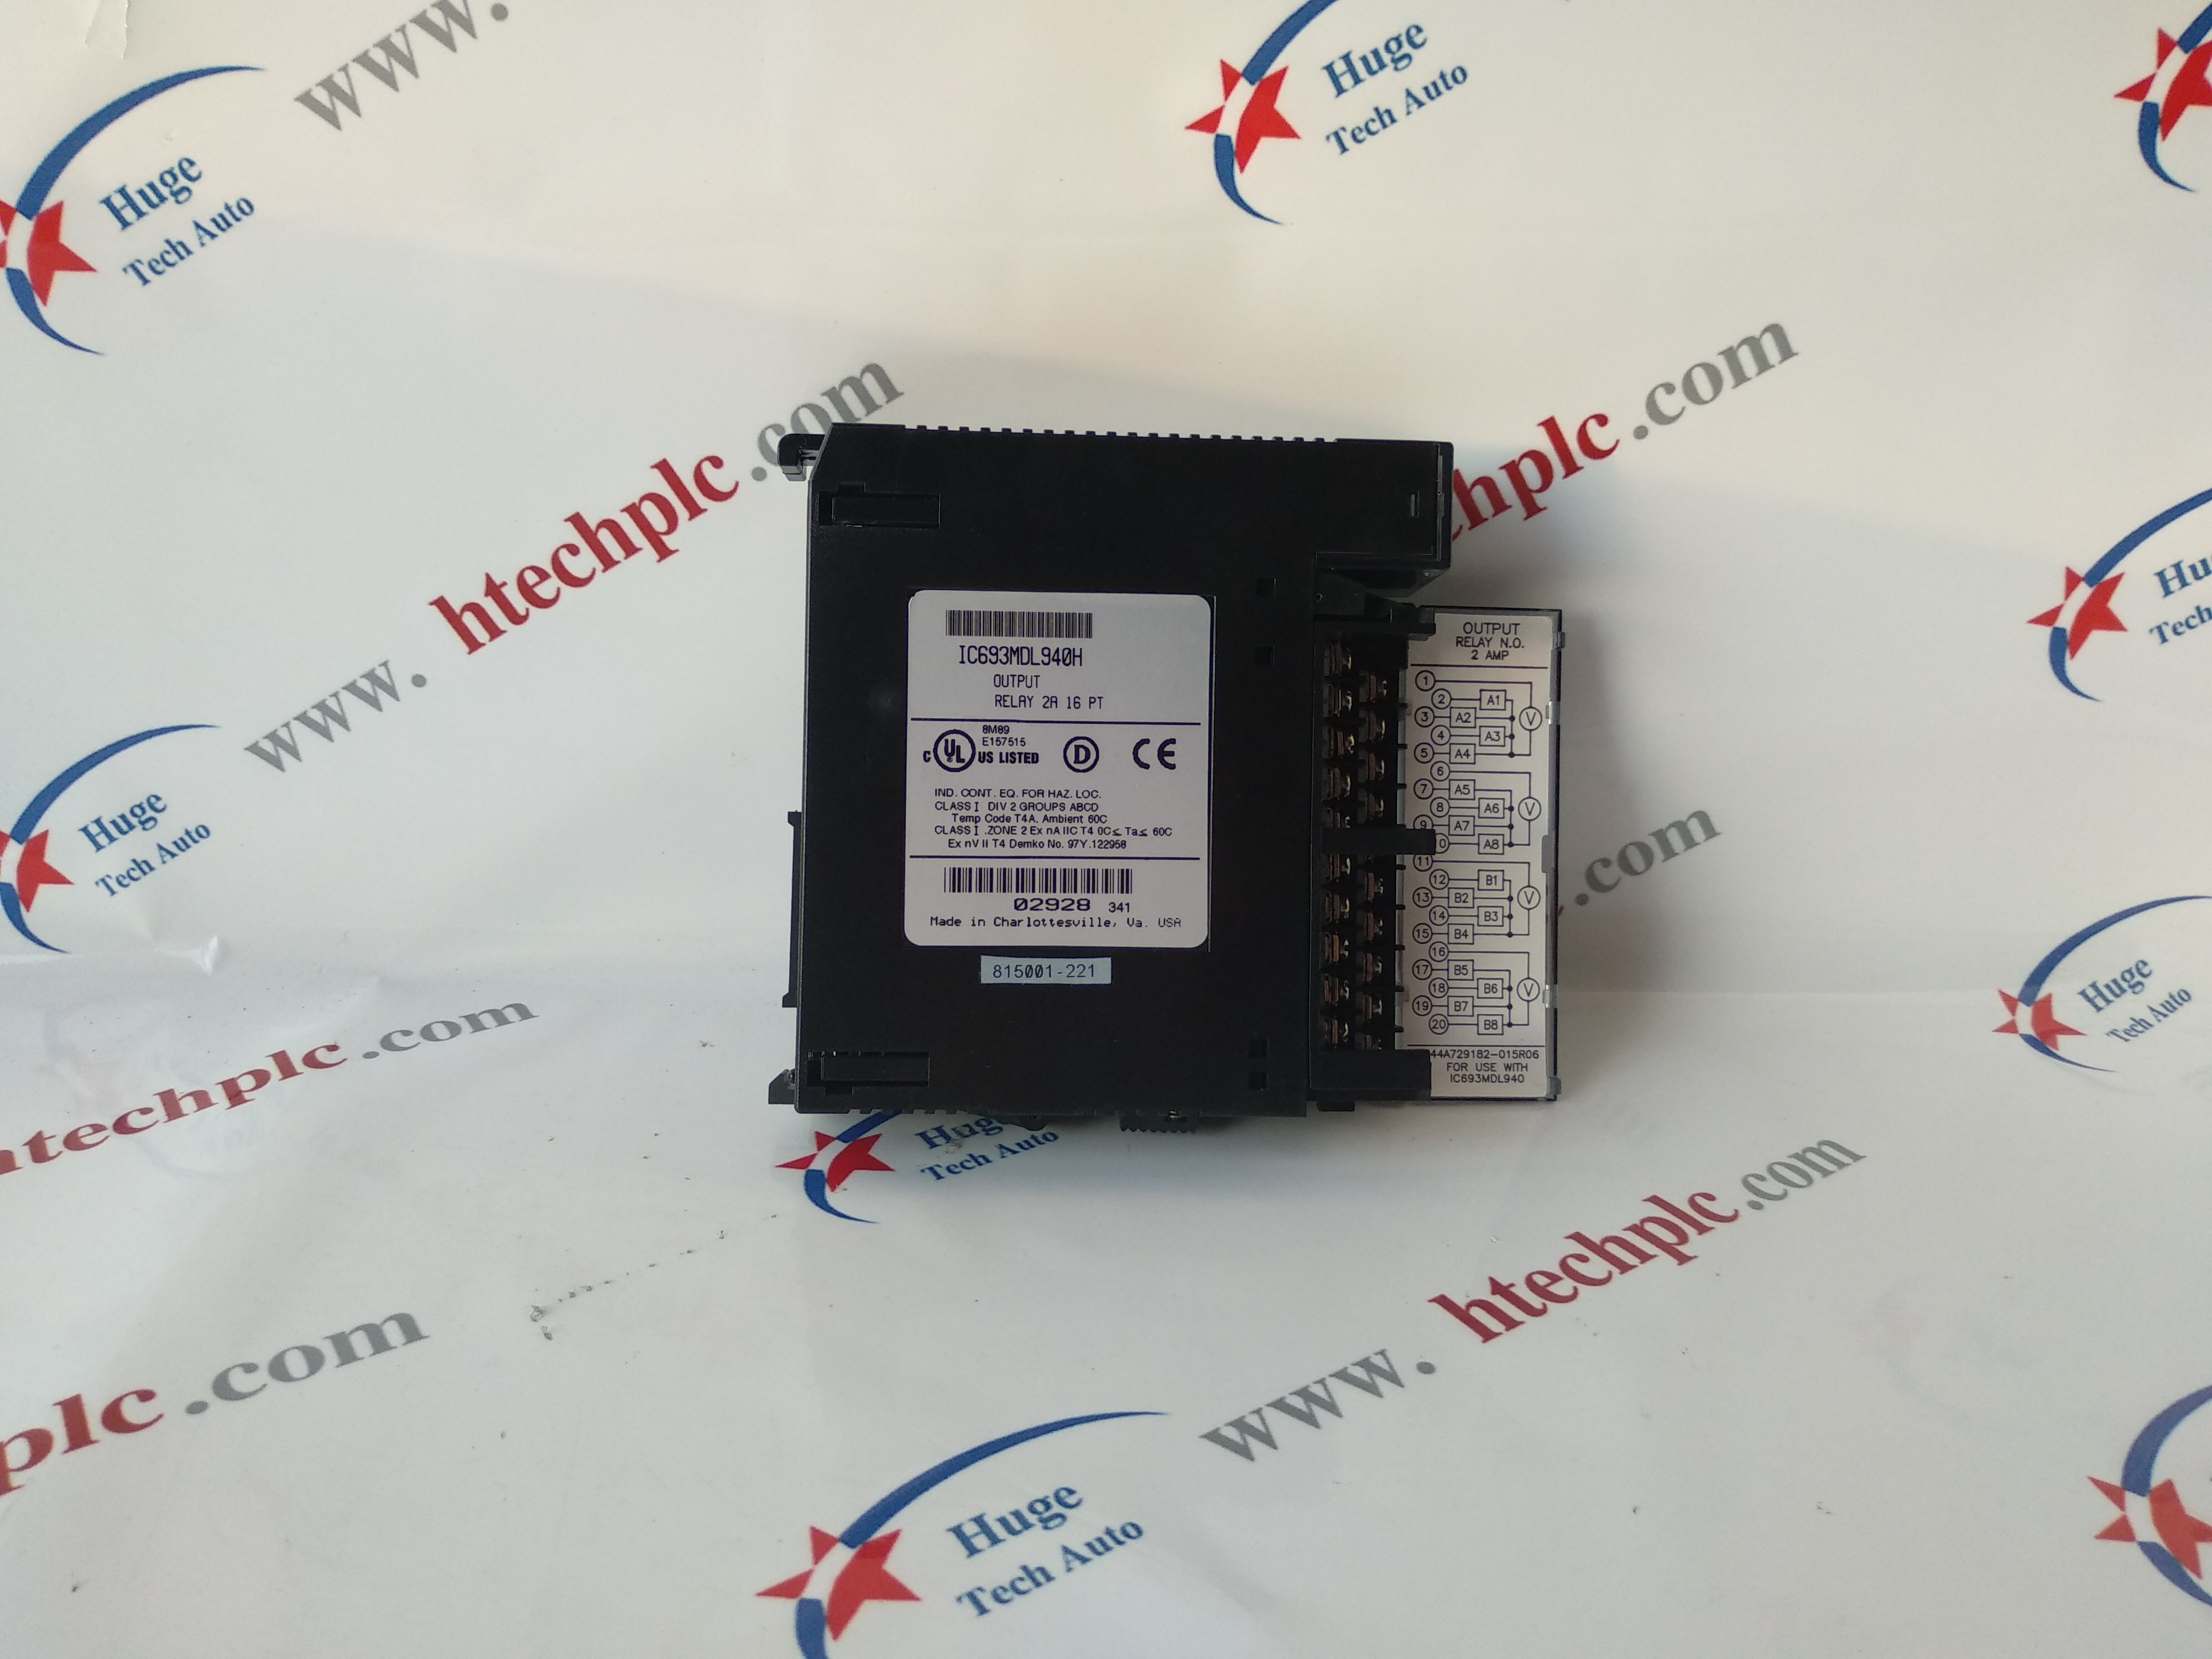 GE 531X308PCSAAG1 brand new PLC DCS TSI system spare parts in stock